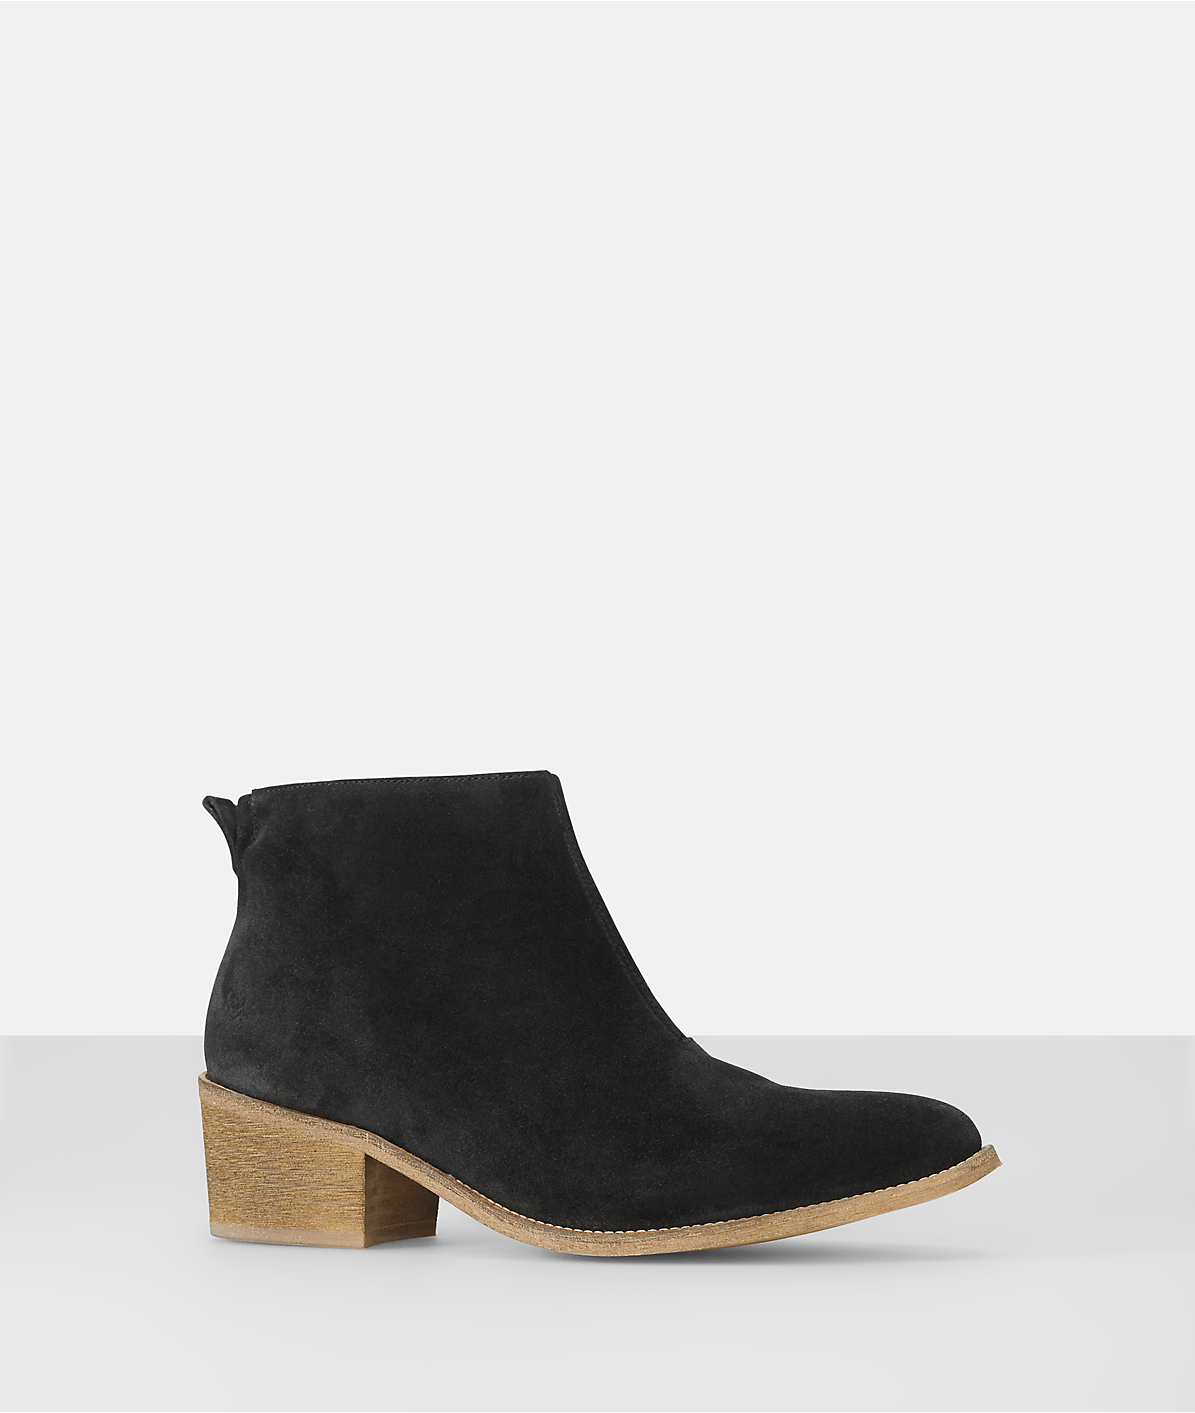 Ankle boots LF175100R from liebeskind